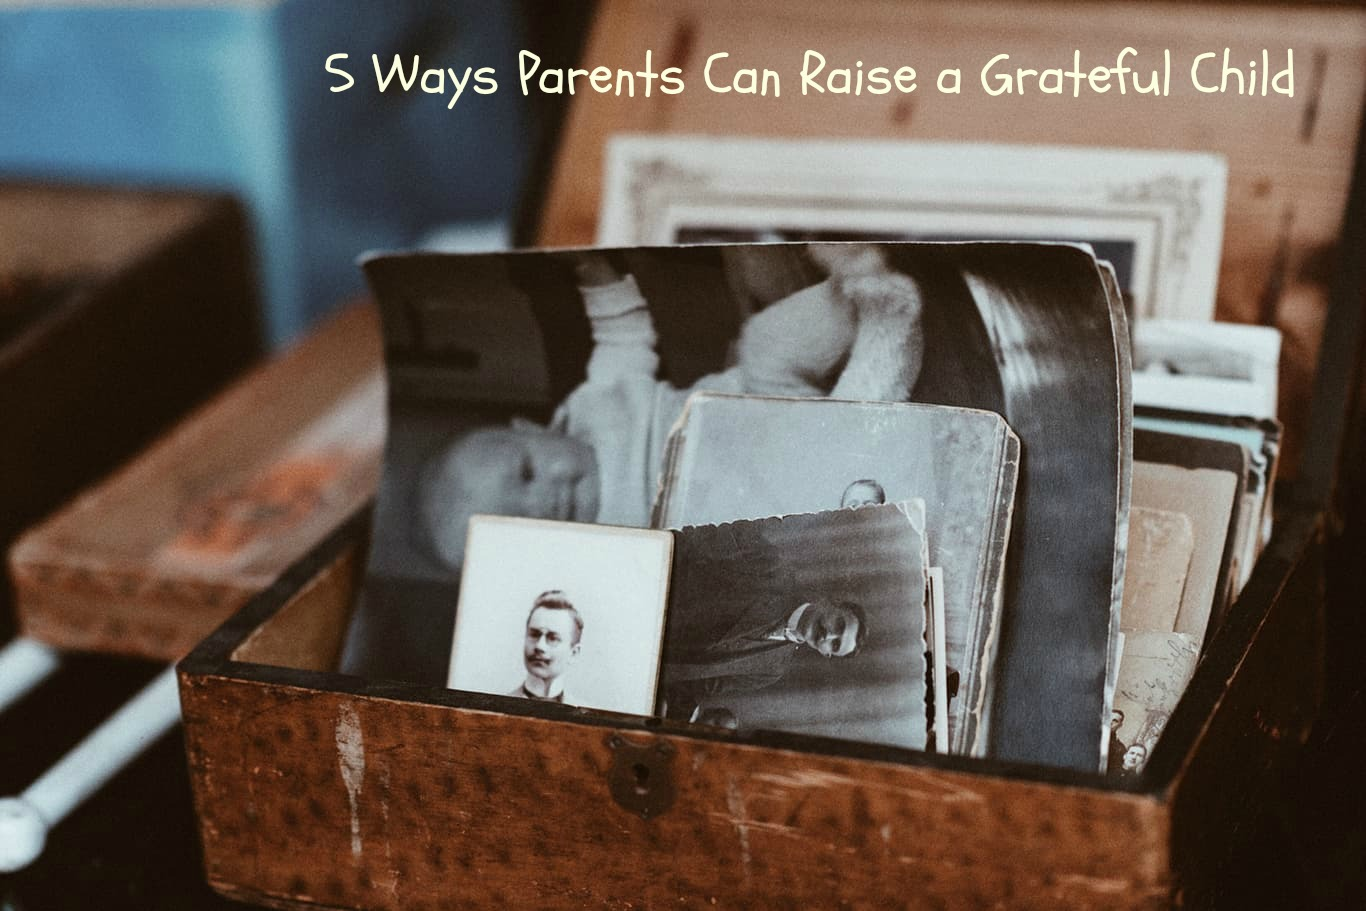 While you and your child are looking at old pictures, tell the stories each picture reminds you of. Tell them how grateful you are for the memories and the people in them.